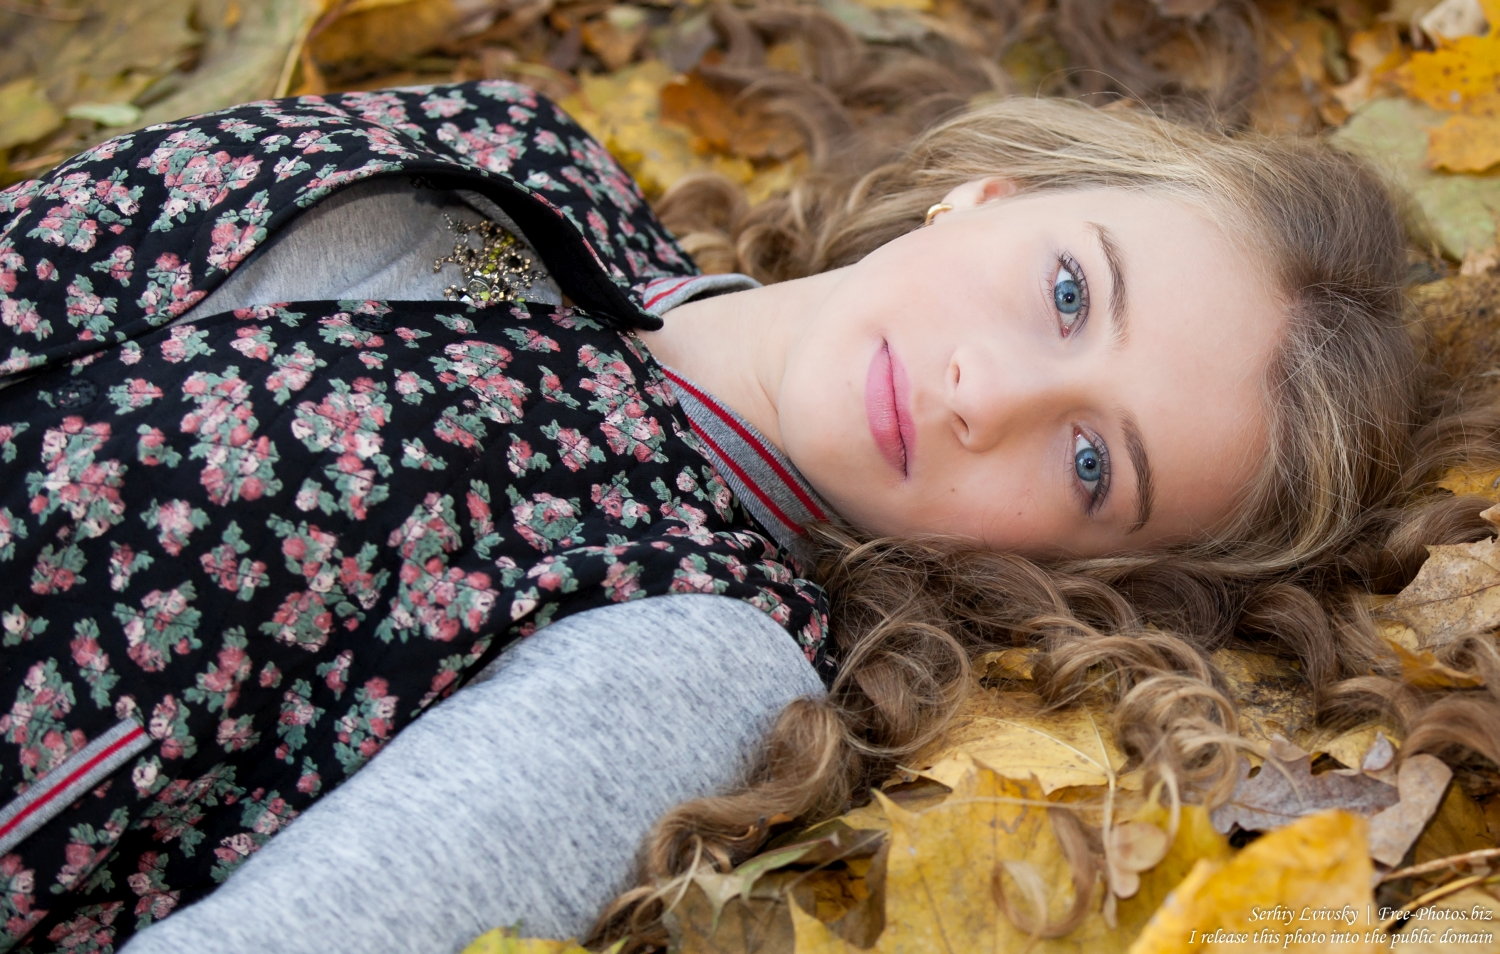 a_13-year-old_girl_photographed_by_serhiy_lvivsky_in_october_2015_05